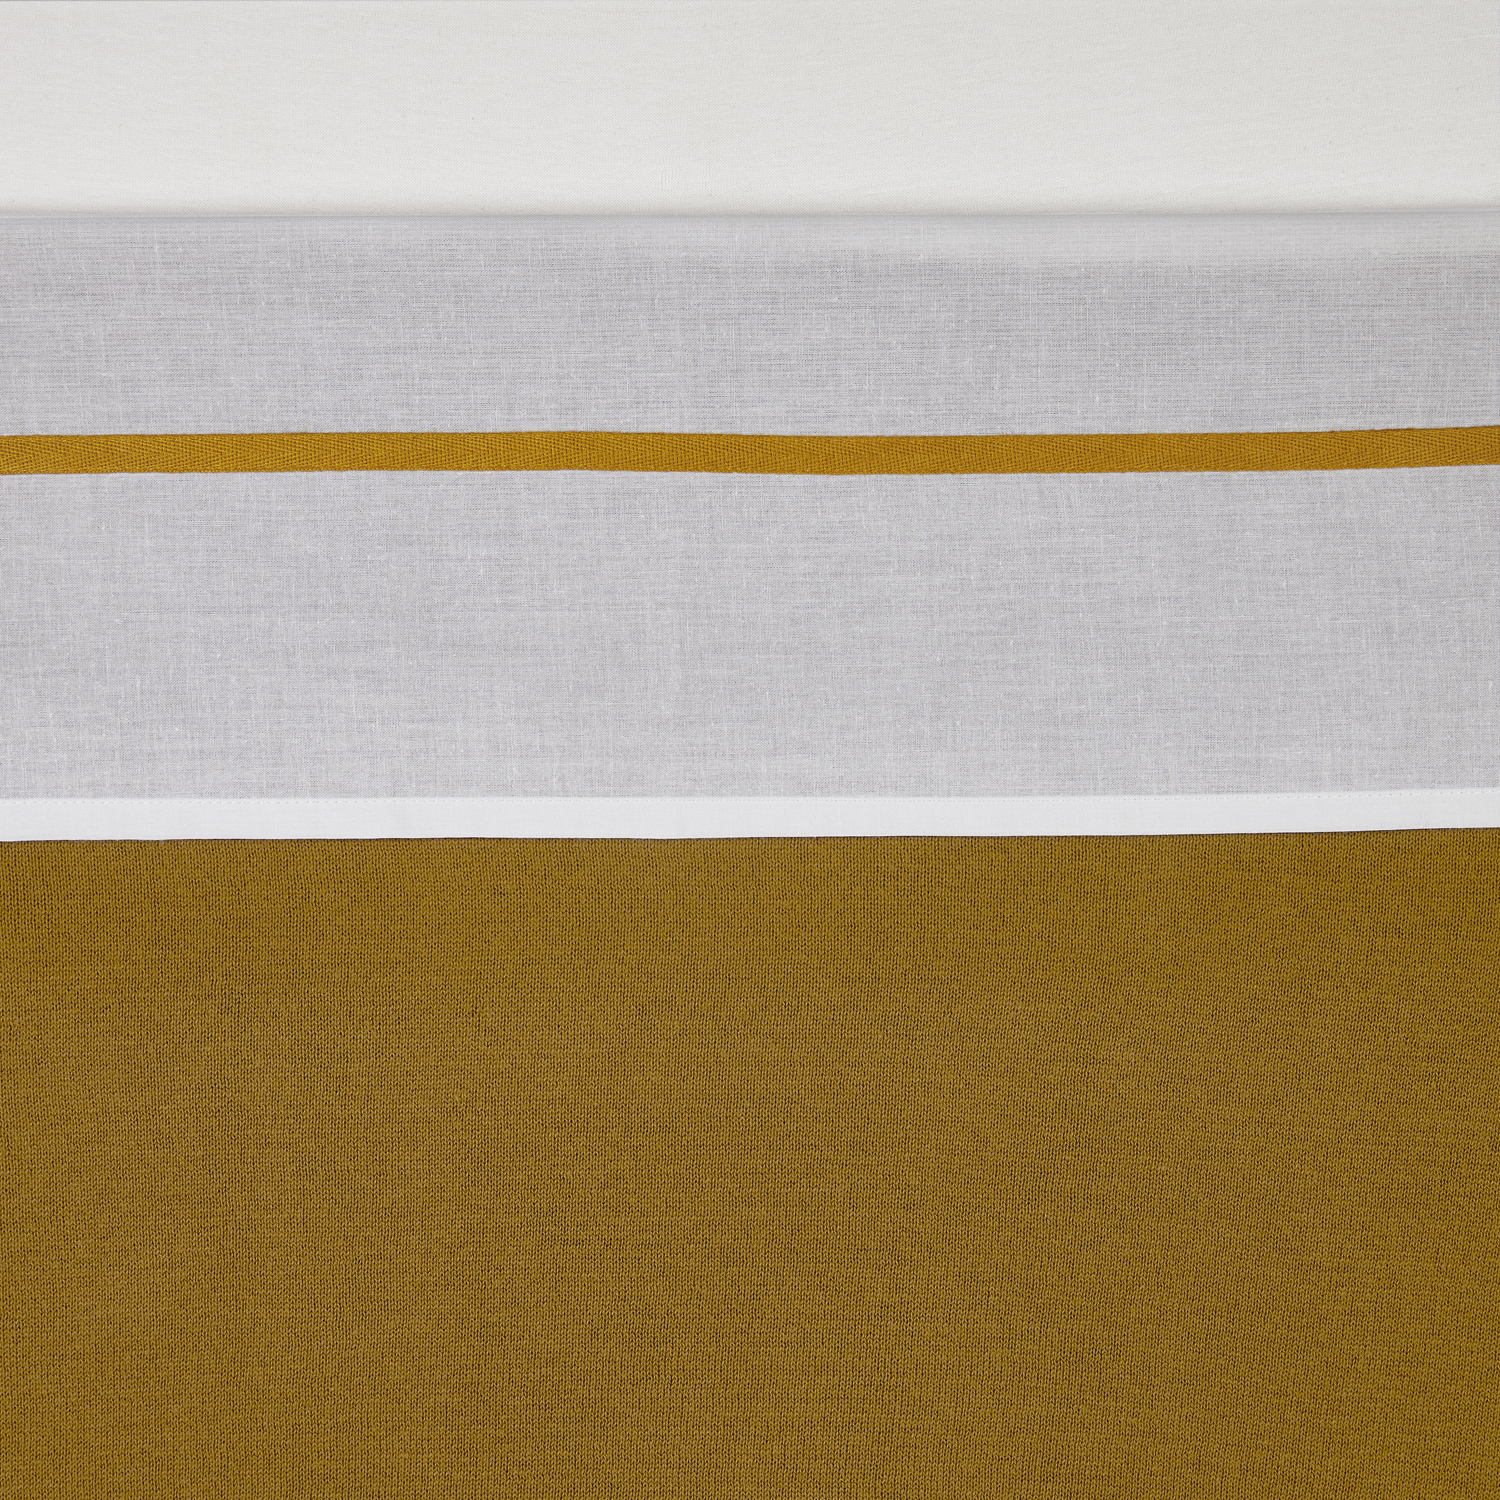 Wieglaken Bies - Honey Gold - 75x100cm